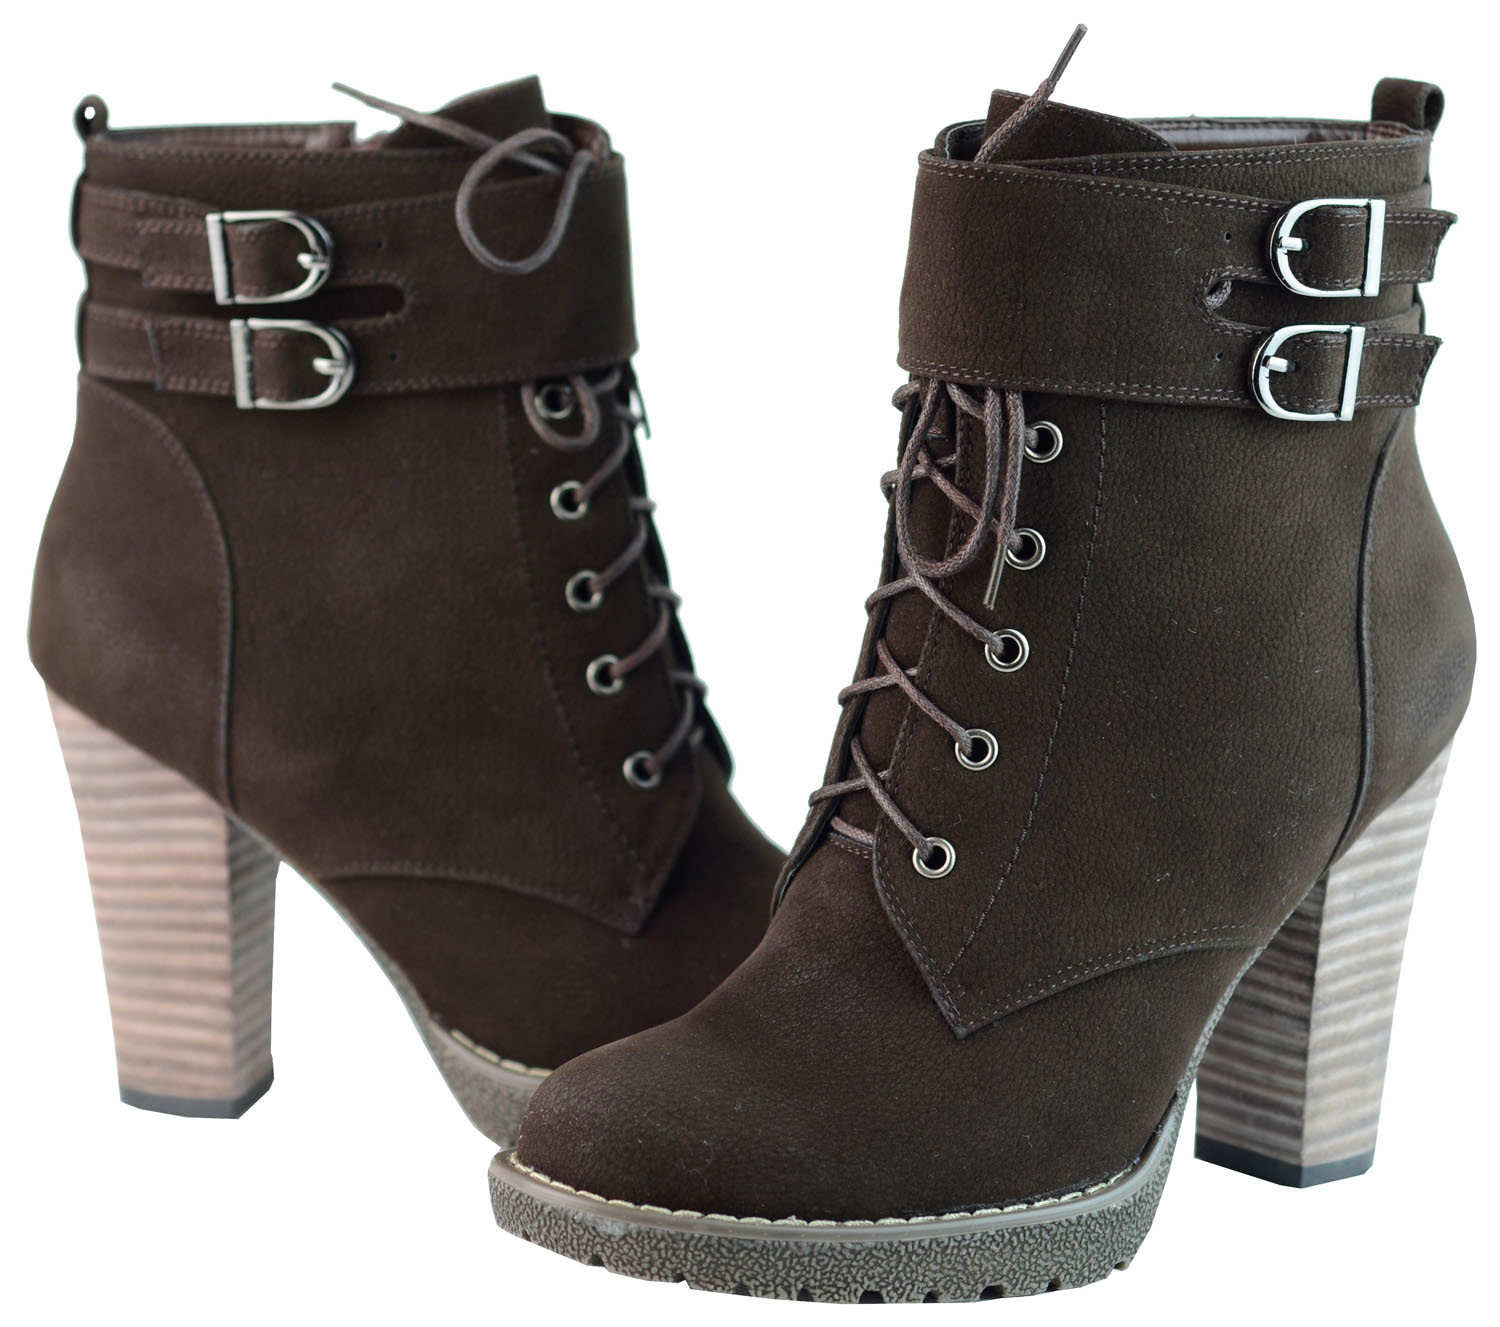 Ann Creek Women's 'Breve' Stacked Heel Lace-up Ankle Boots